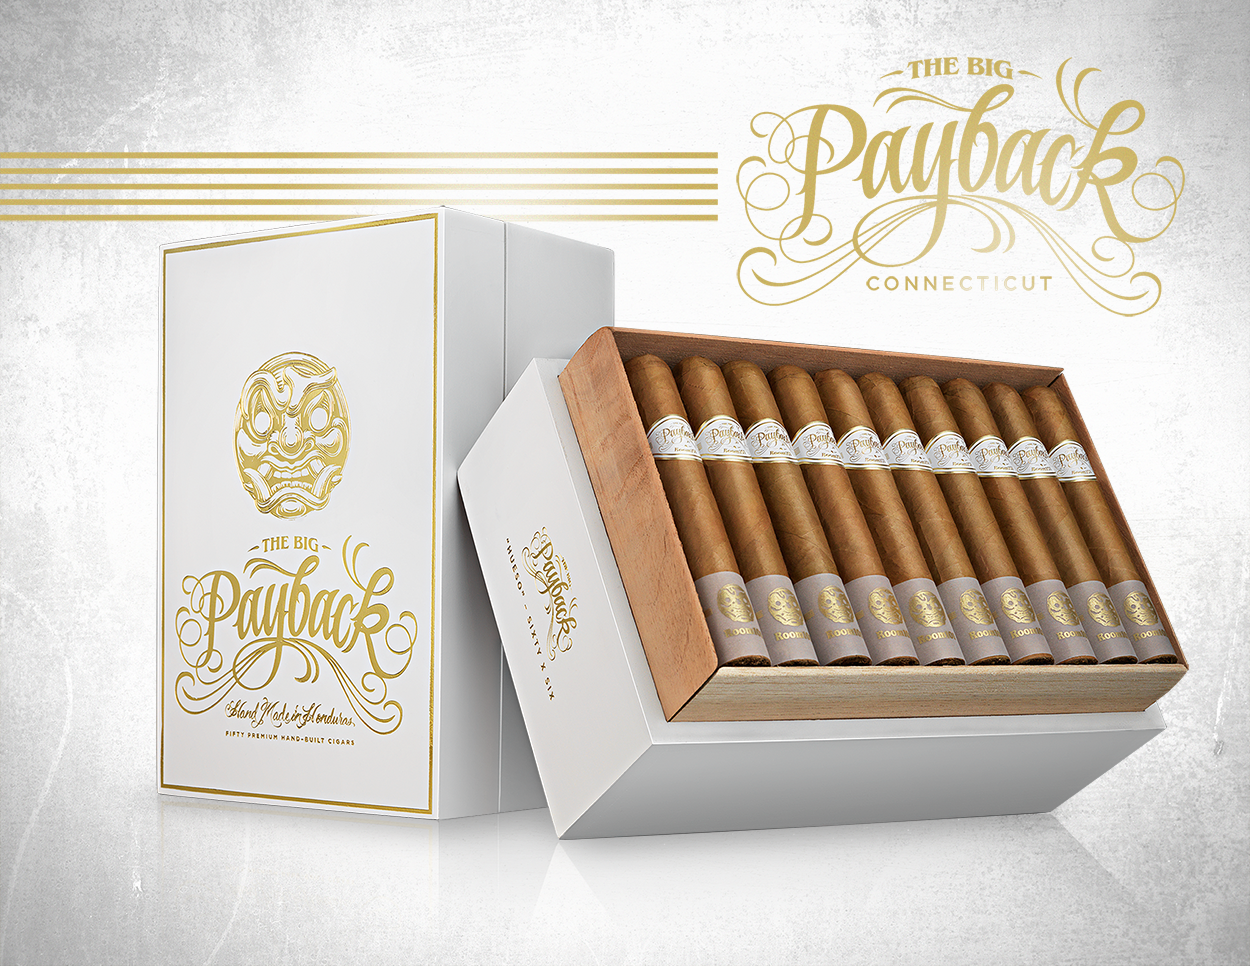 Cigar News: Room 101 The Big Payback Connecticut Coming in February